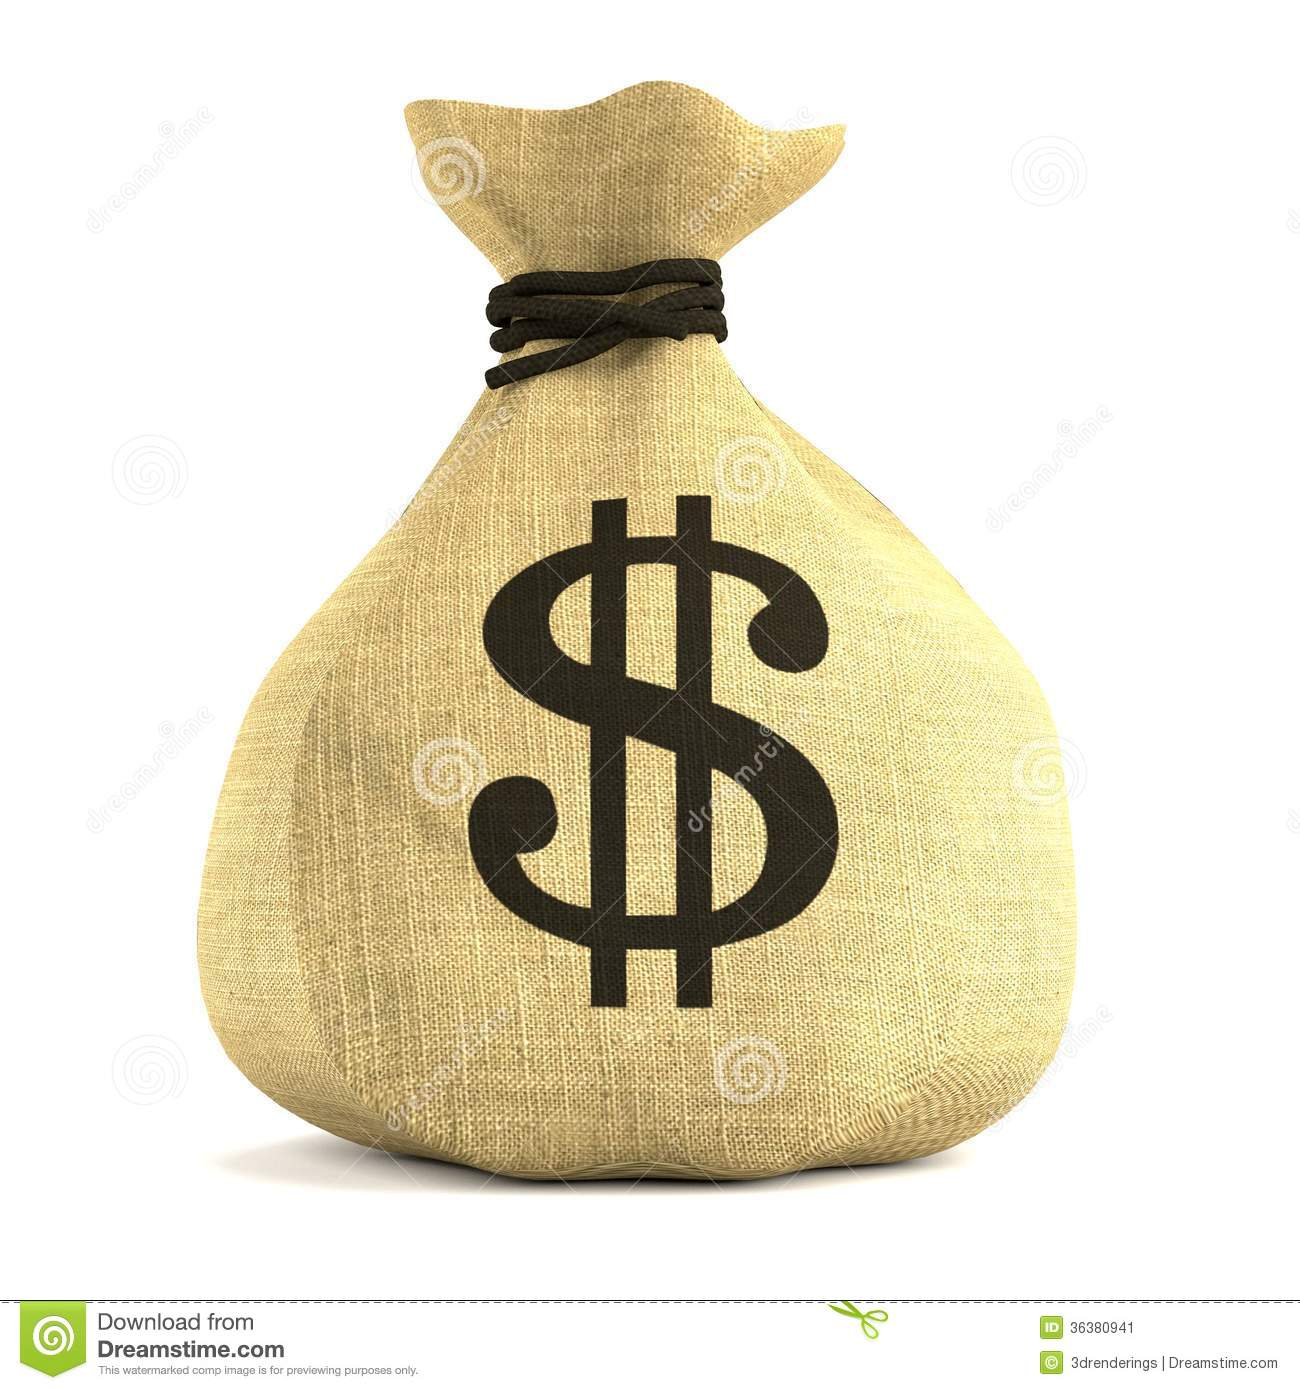 Render Of Money Bag Stock Image - Image: 36380941